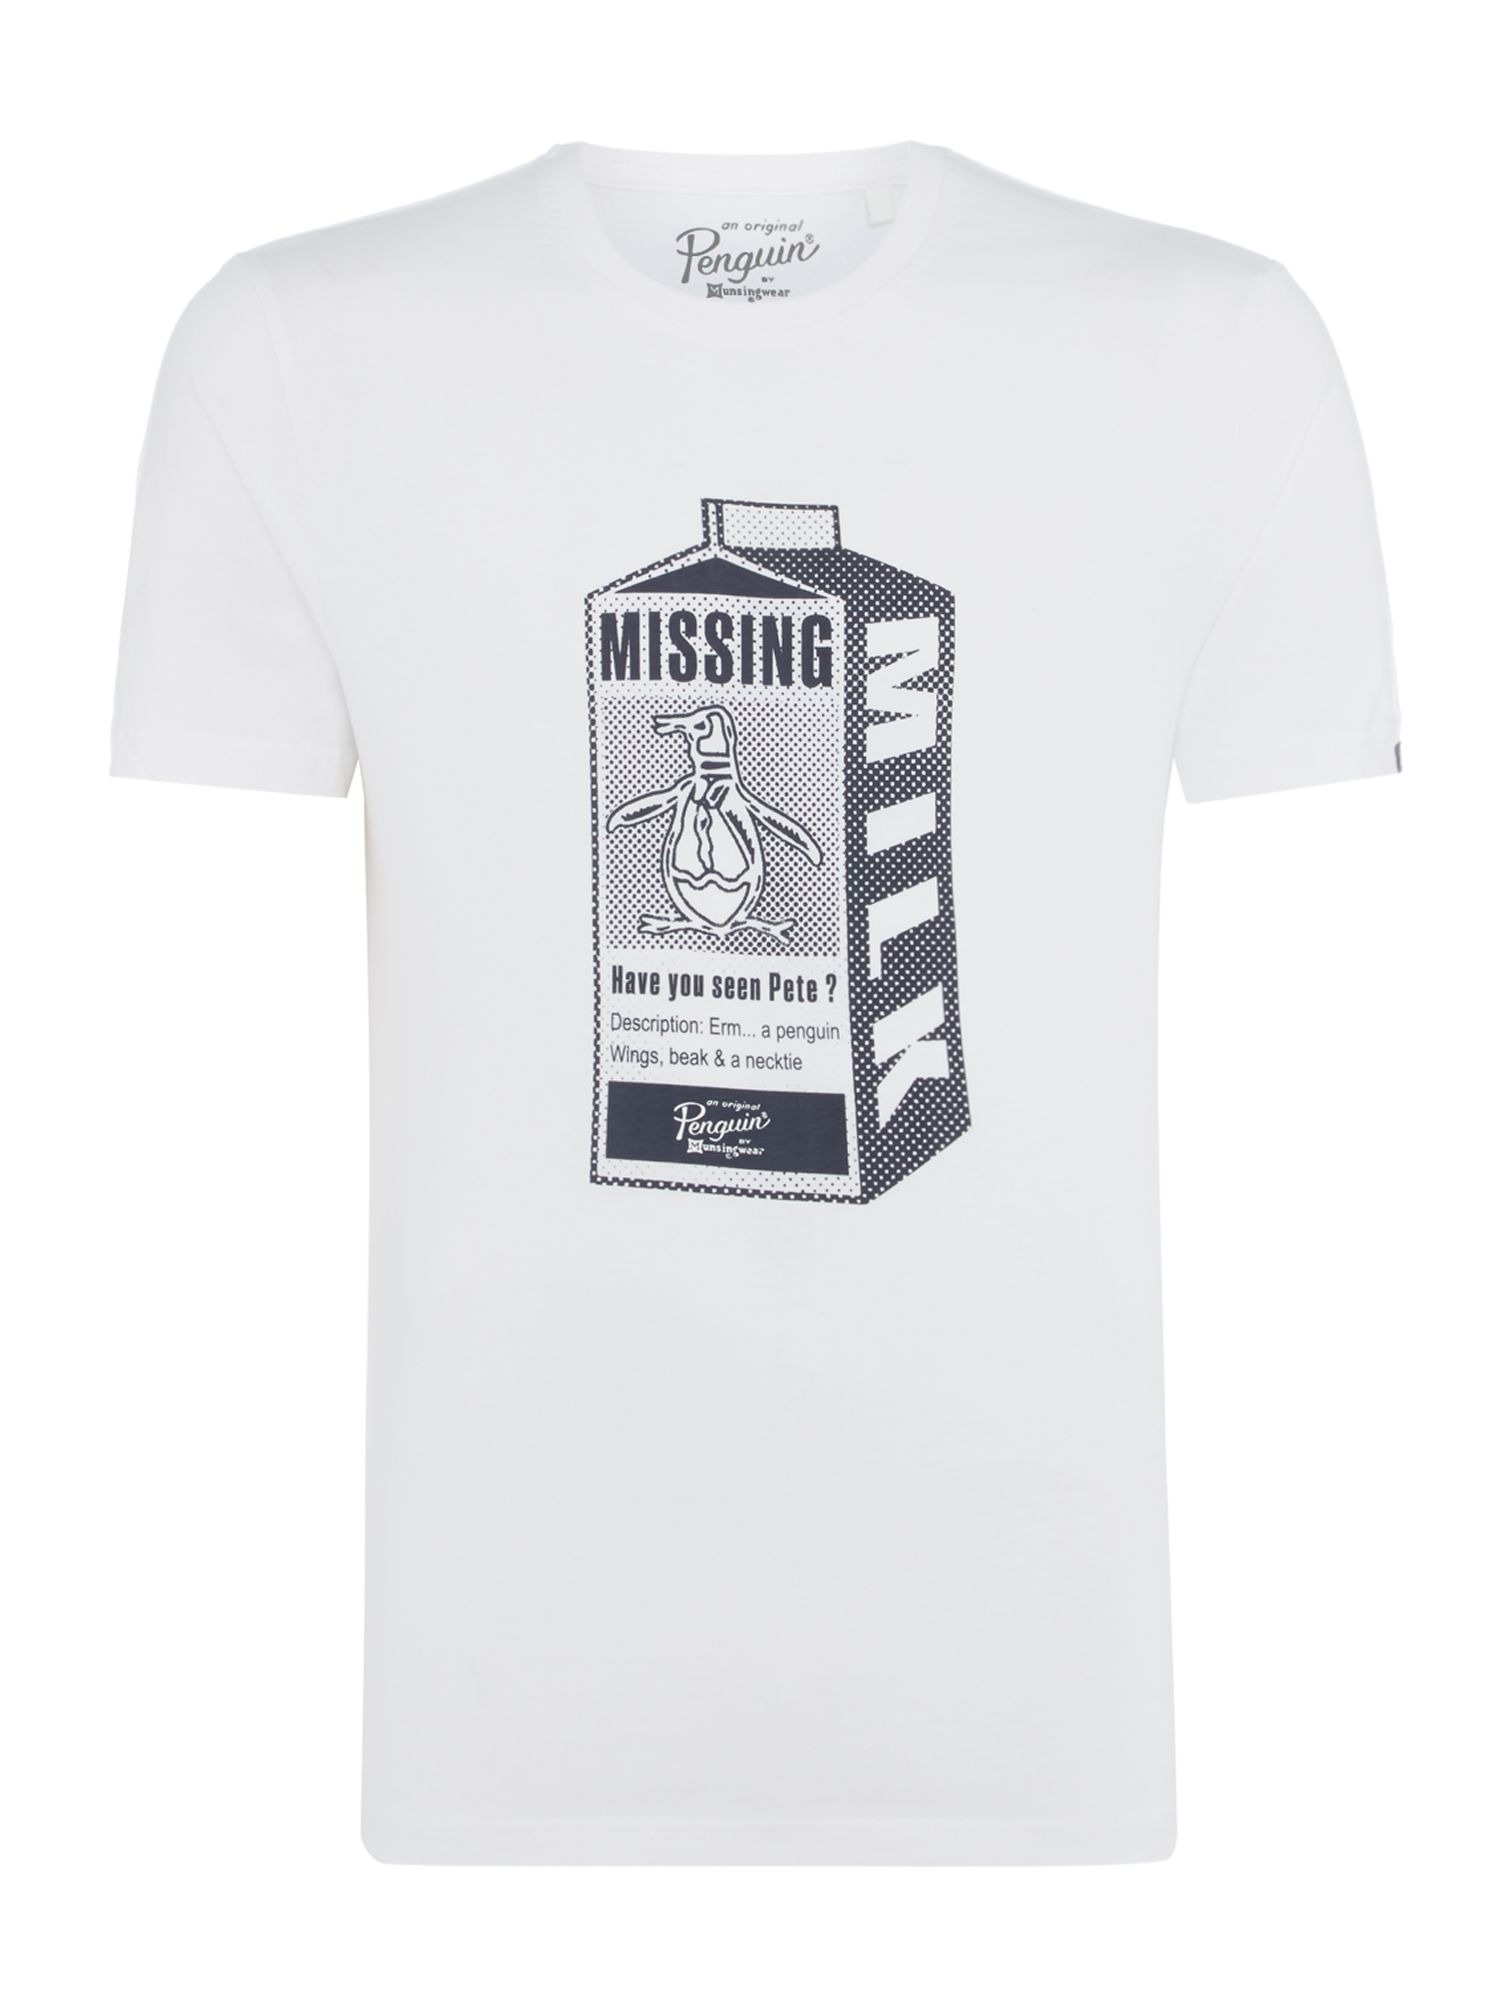 Men's Original Penguin Missing Pete Milk Crew Neck T-Shirt, White